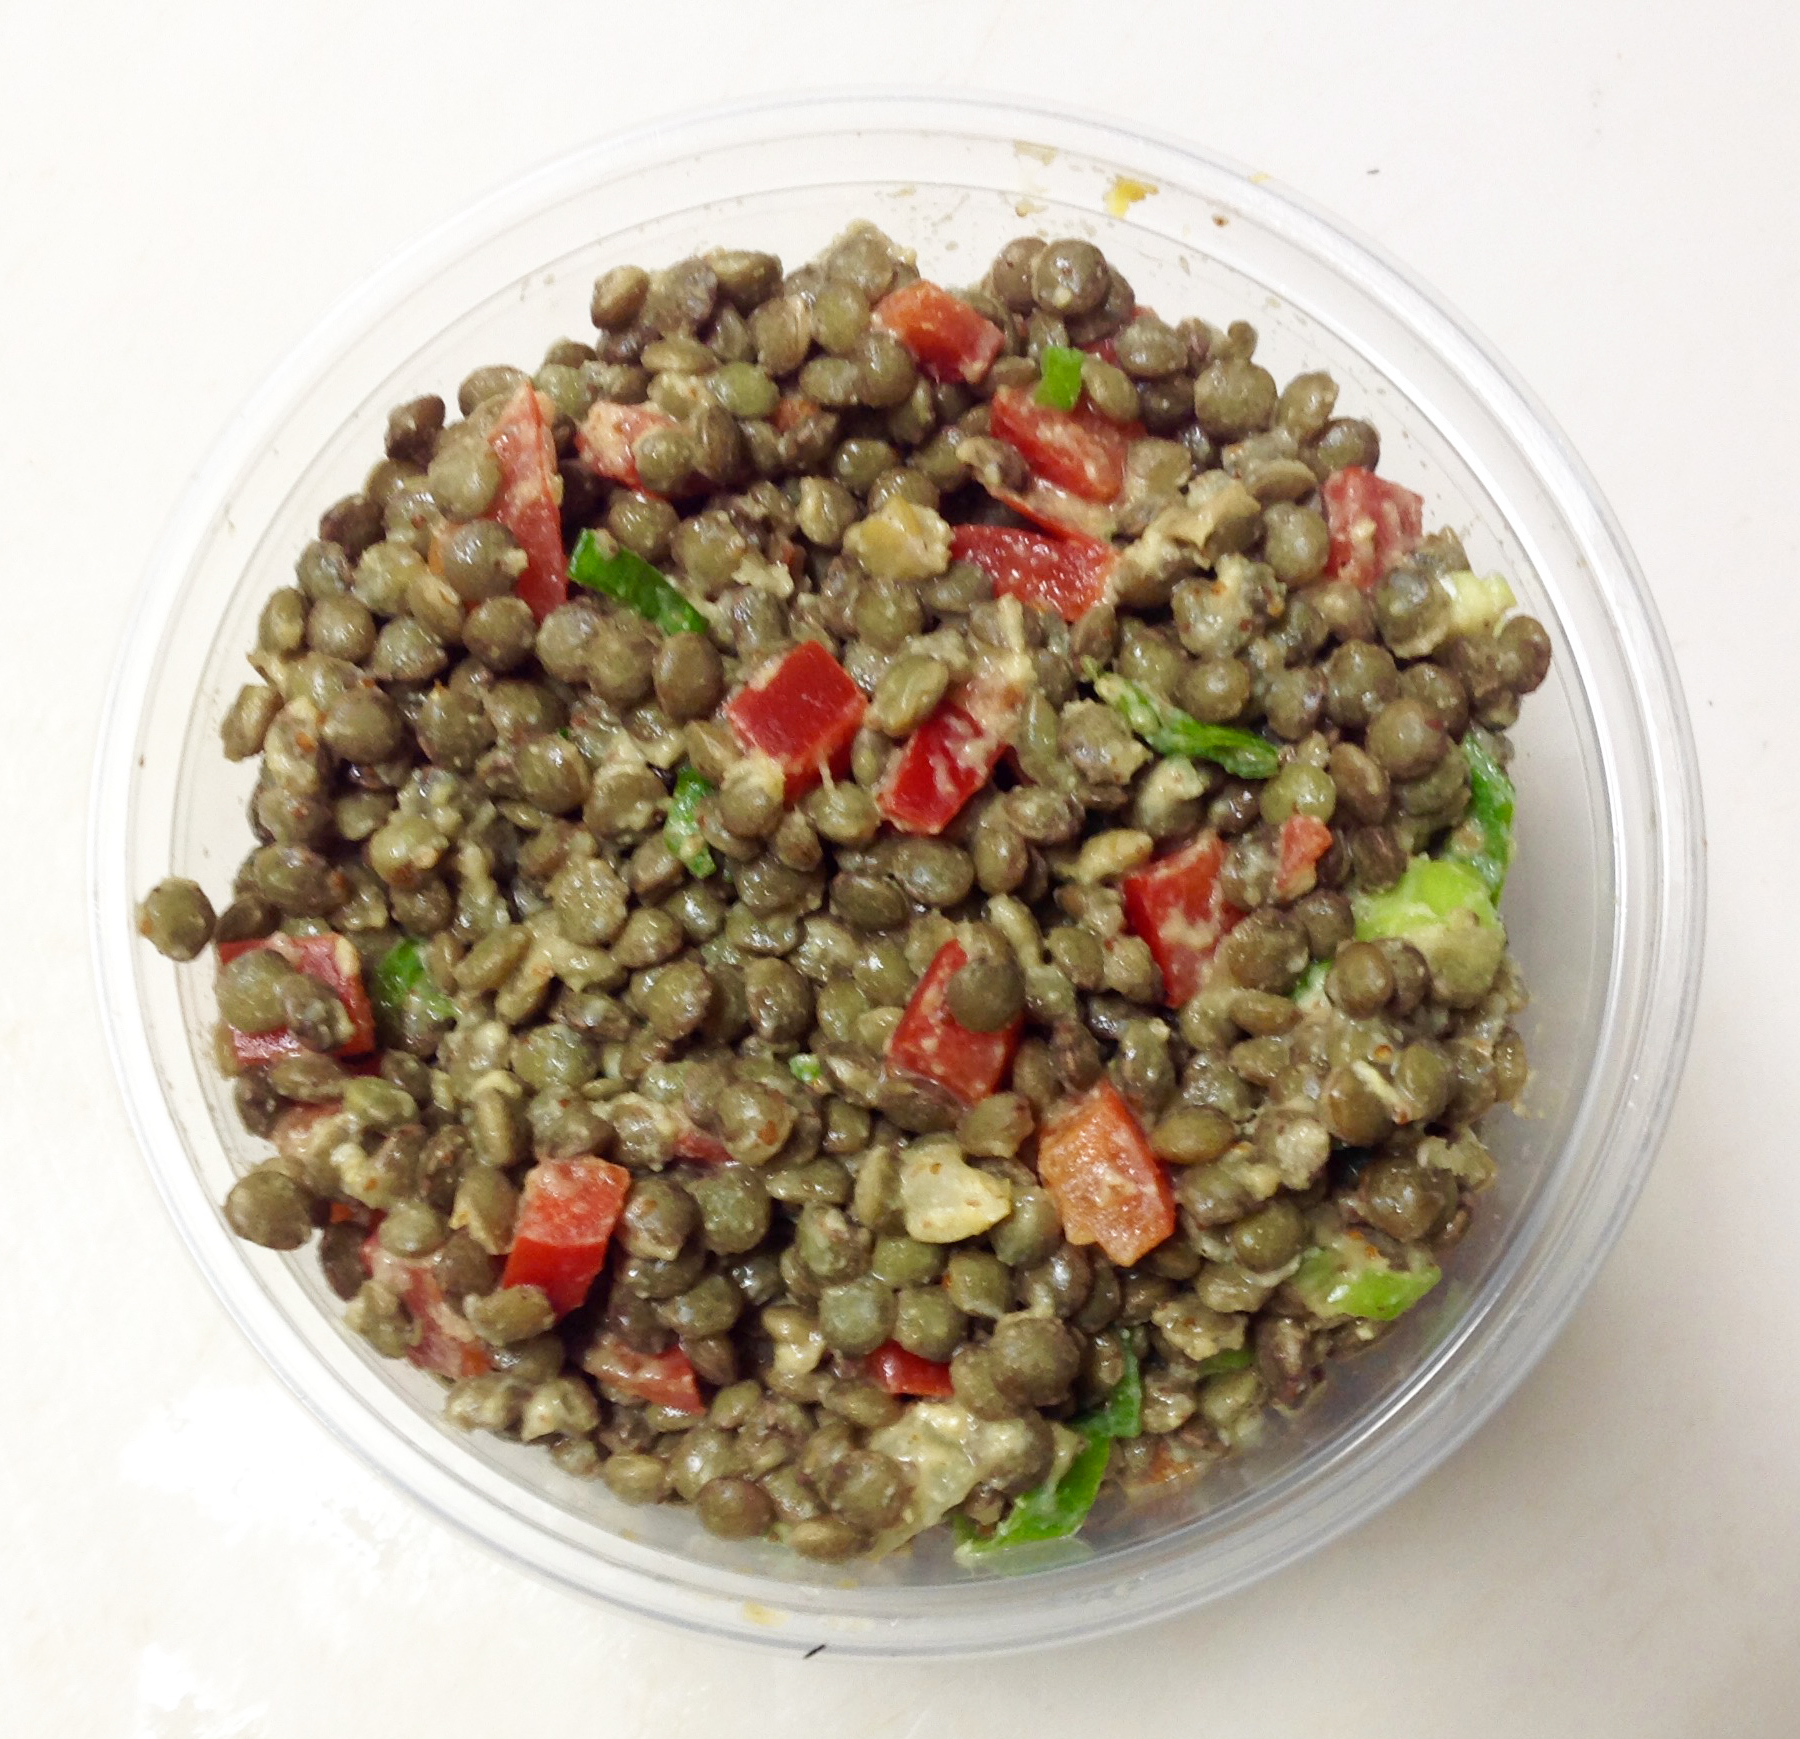 Lentil, bell, mustard, brv, ses oil, parsley